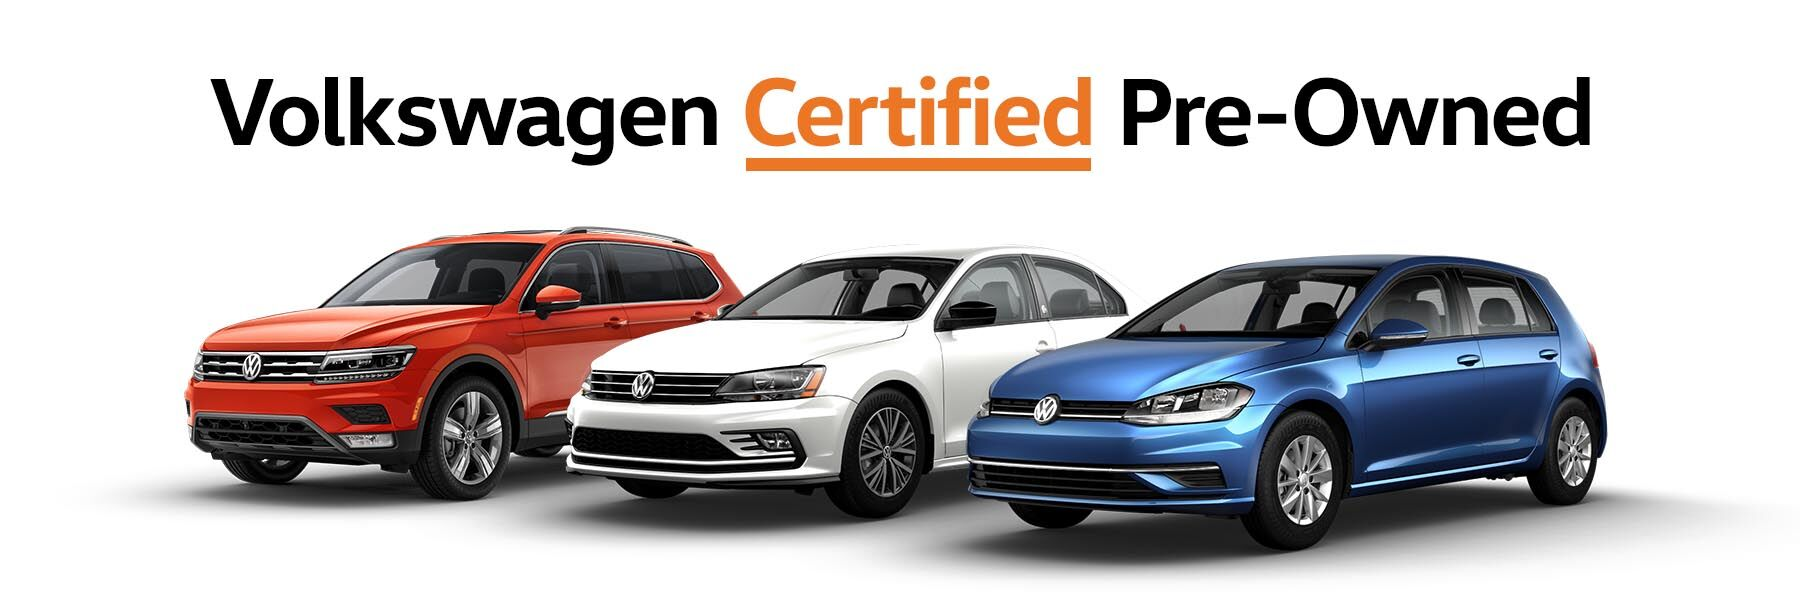 Volkswagen Certified Pre-Owned in Brockton, MA